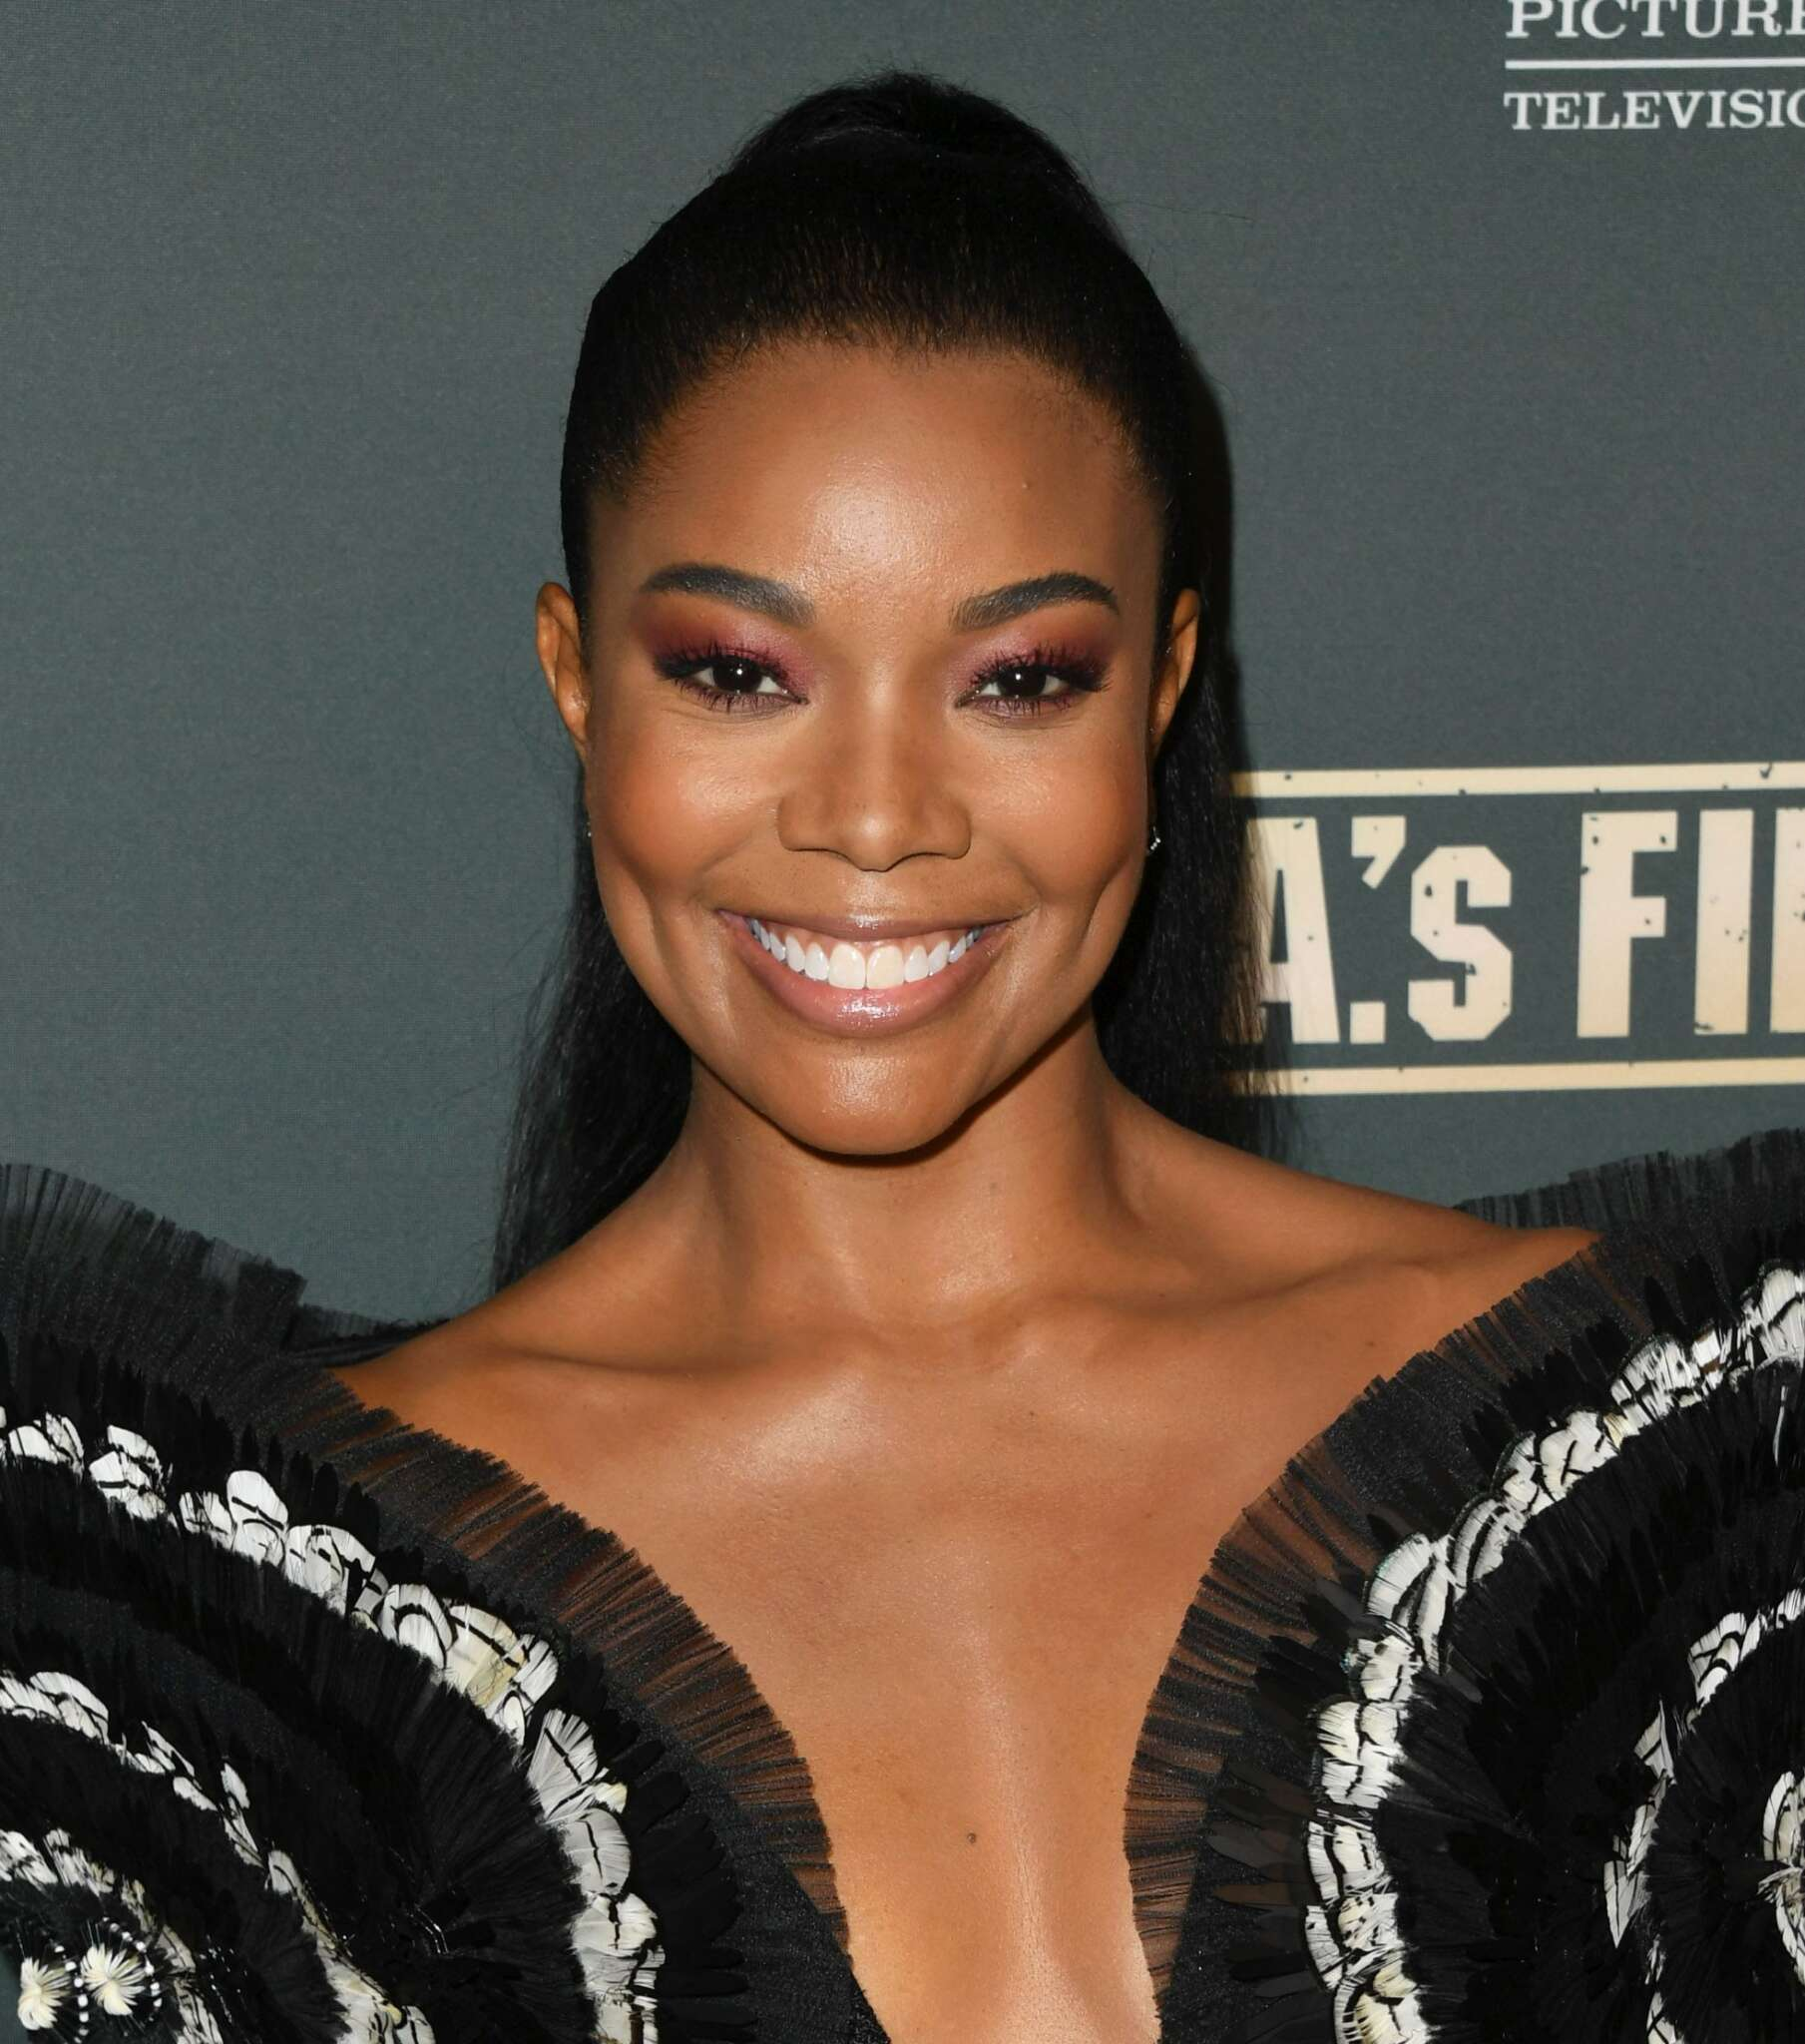 gabrielle-union-surprises-her-fans-with-a-baby-hair-looks-message-check-out-what-she-has-to-say